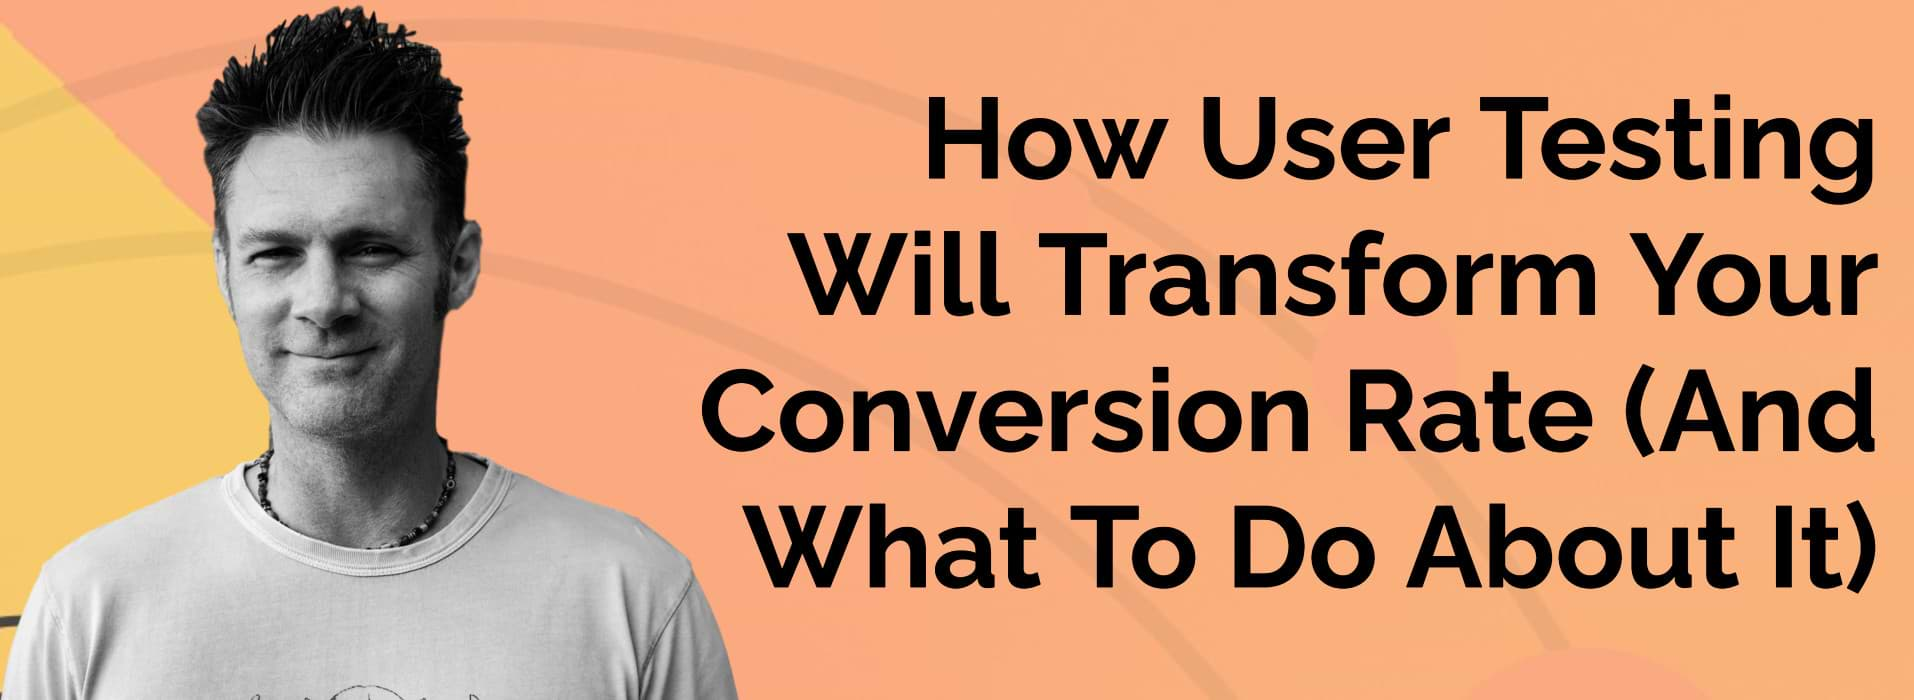 How User Testing Will Transform Your Conversion Rate (And What To Do About It)